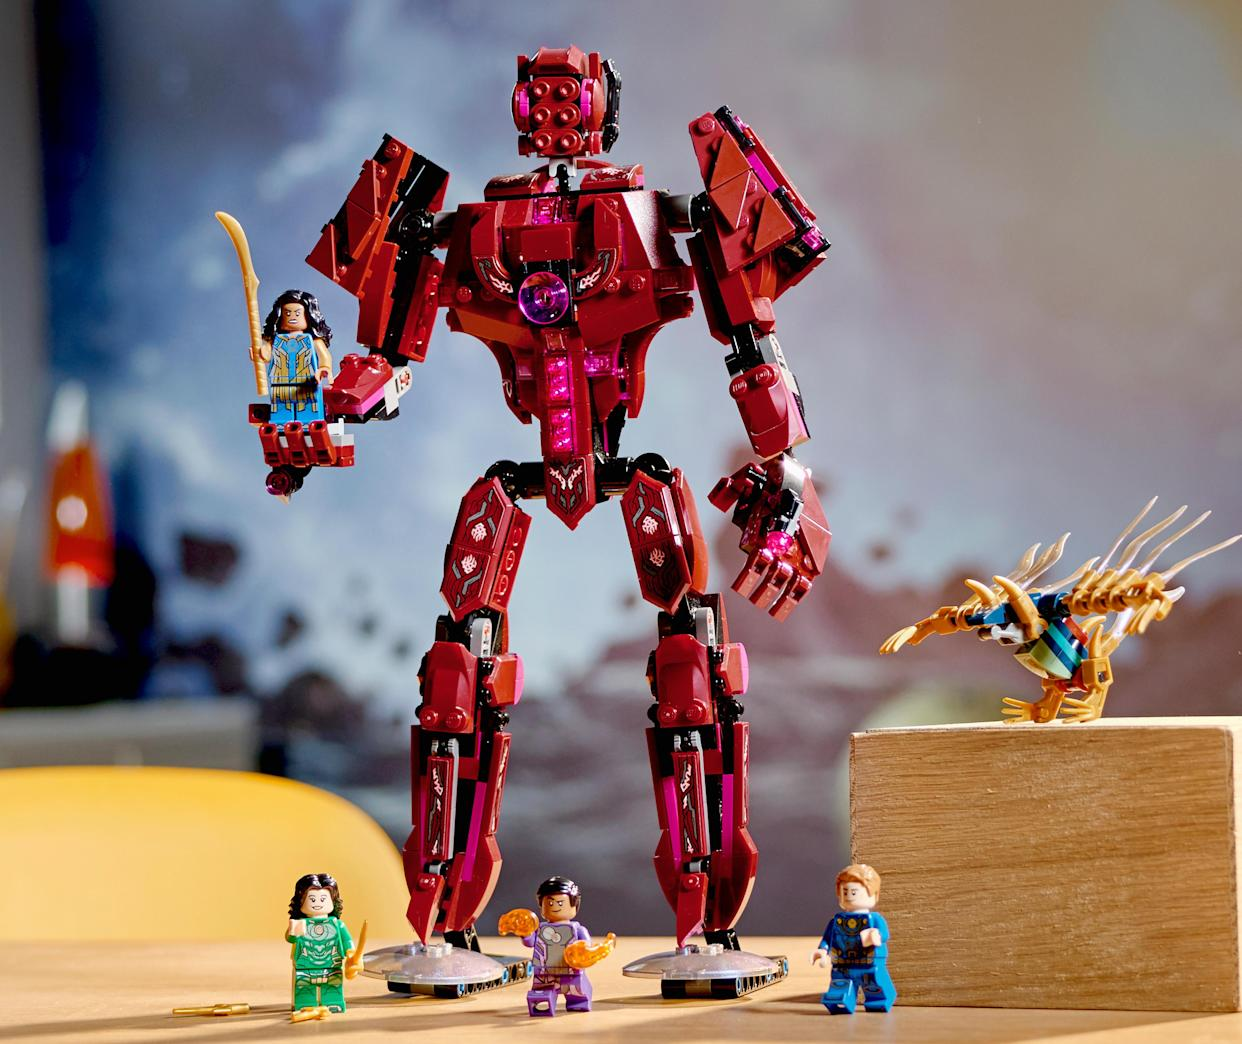 Arishem faces off with the Eternals in the new Lego set. (Photo: Lego)